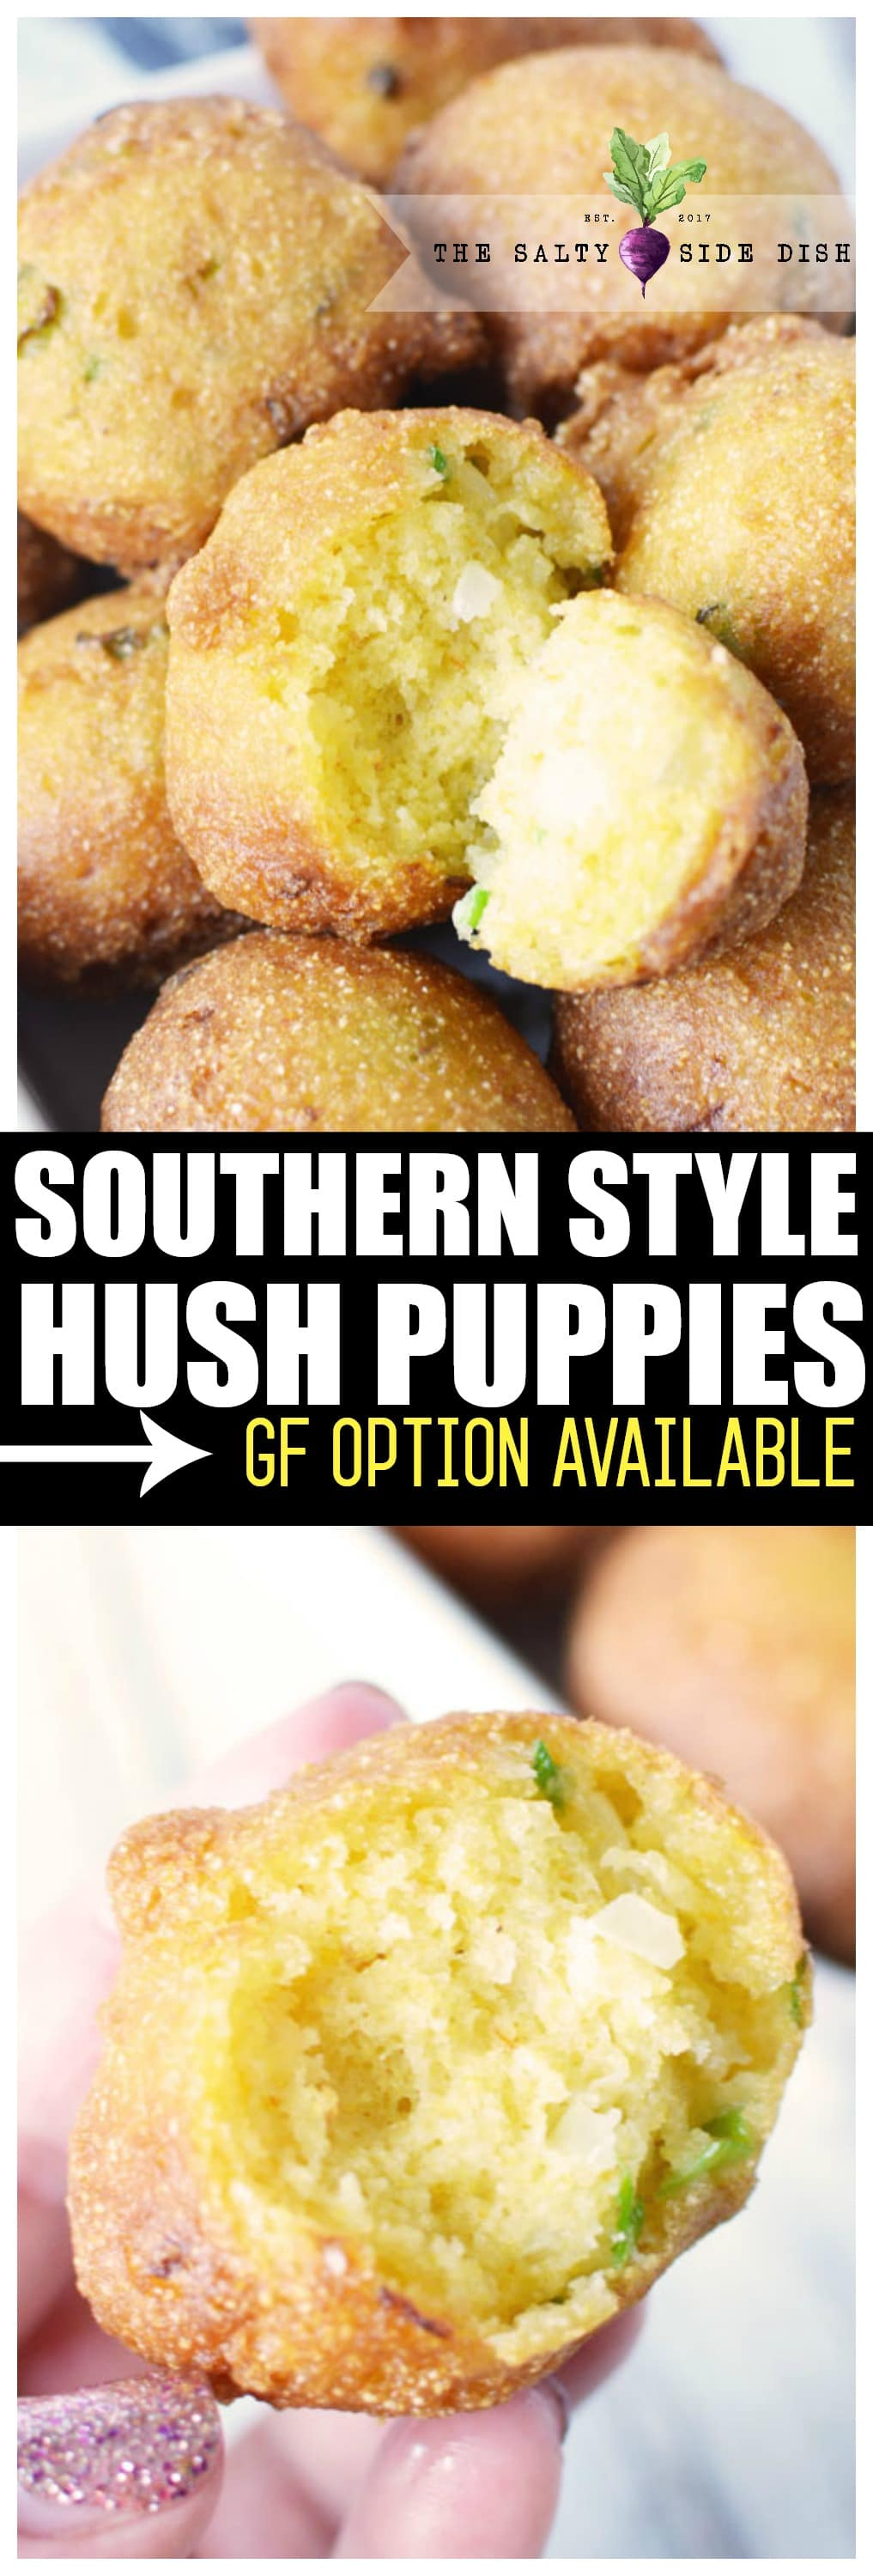 Hush Puppies Recipe an easy southern delicacy with the right amount of sweet and salty balance #hushpuppies #bbq #bread #sidedish